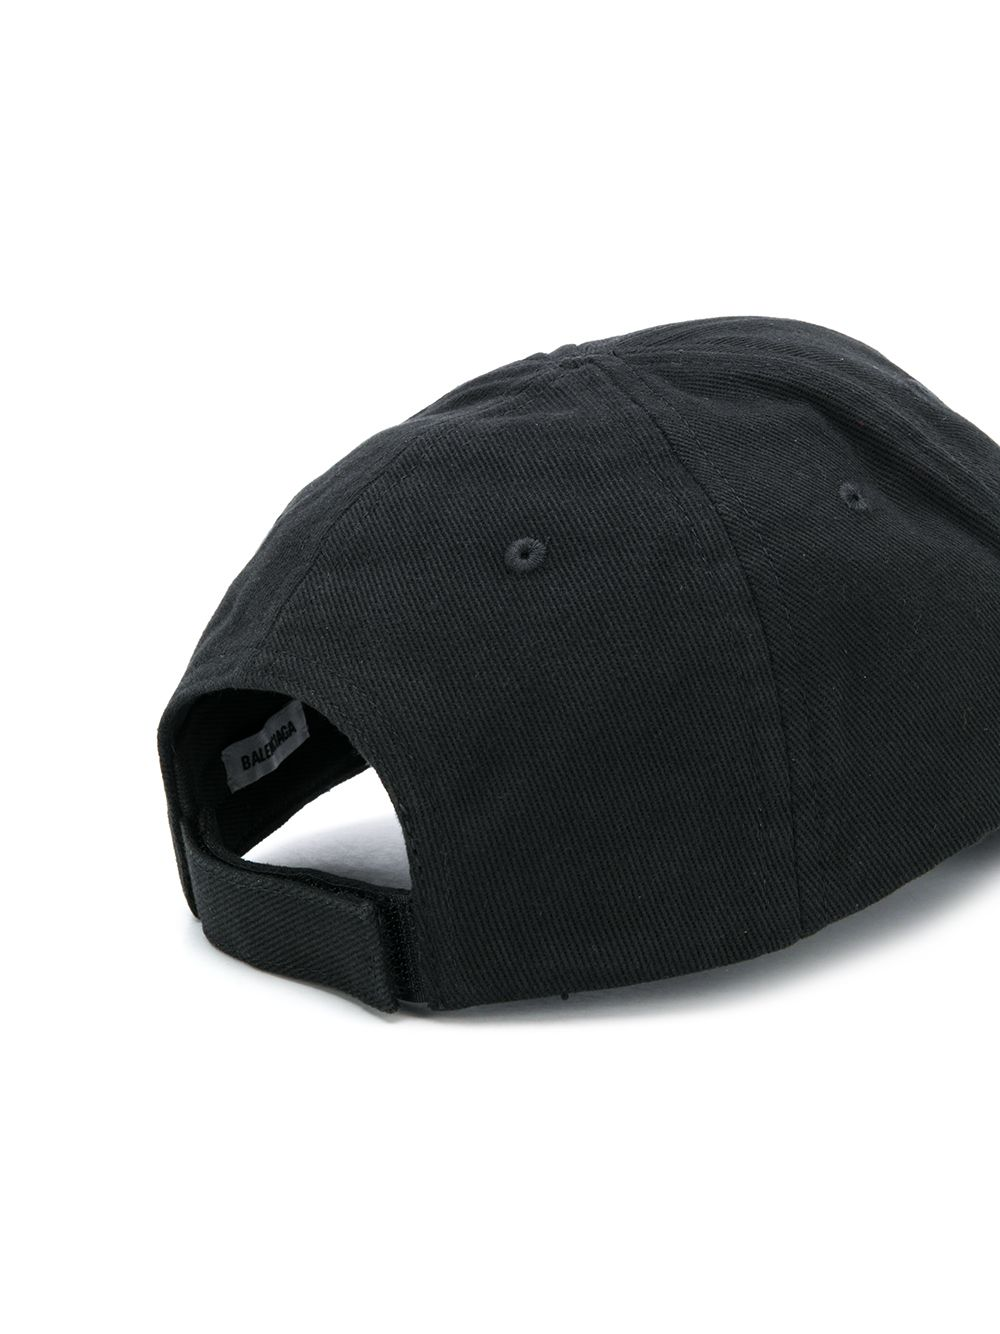 BALENCIAGA Uniform Cap Black/Red